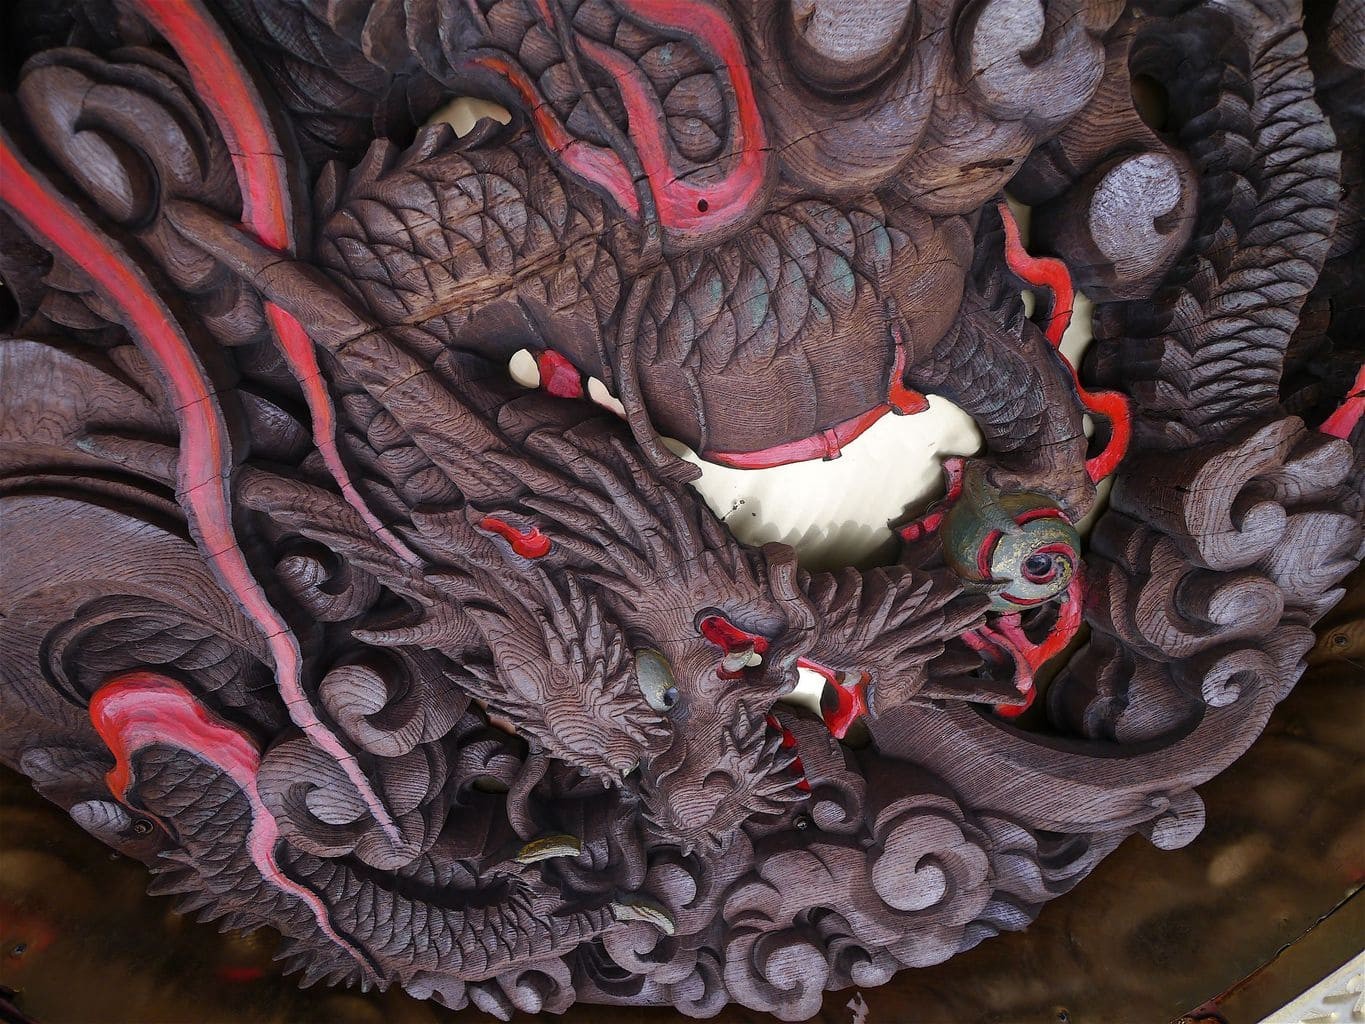 Kaminari gate dragon